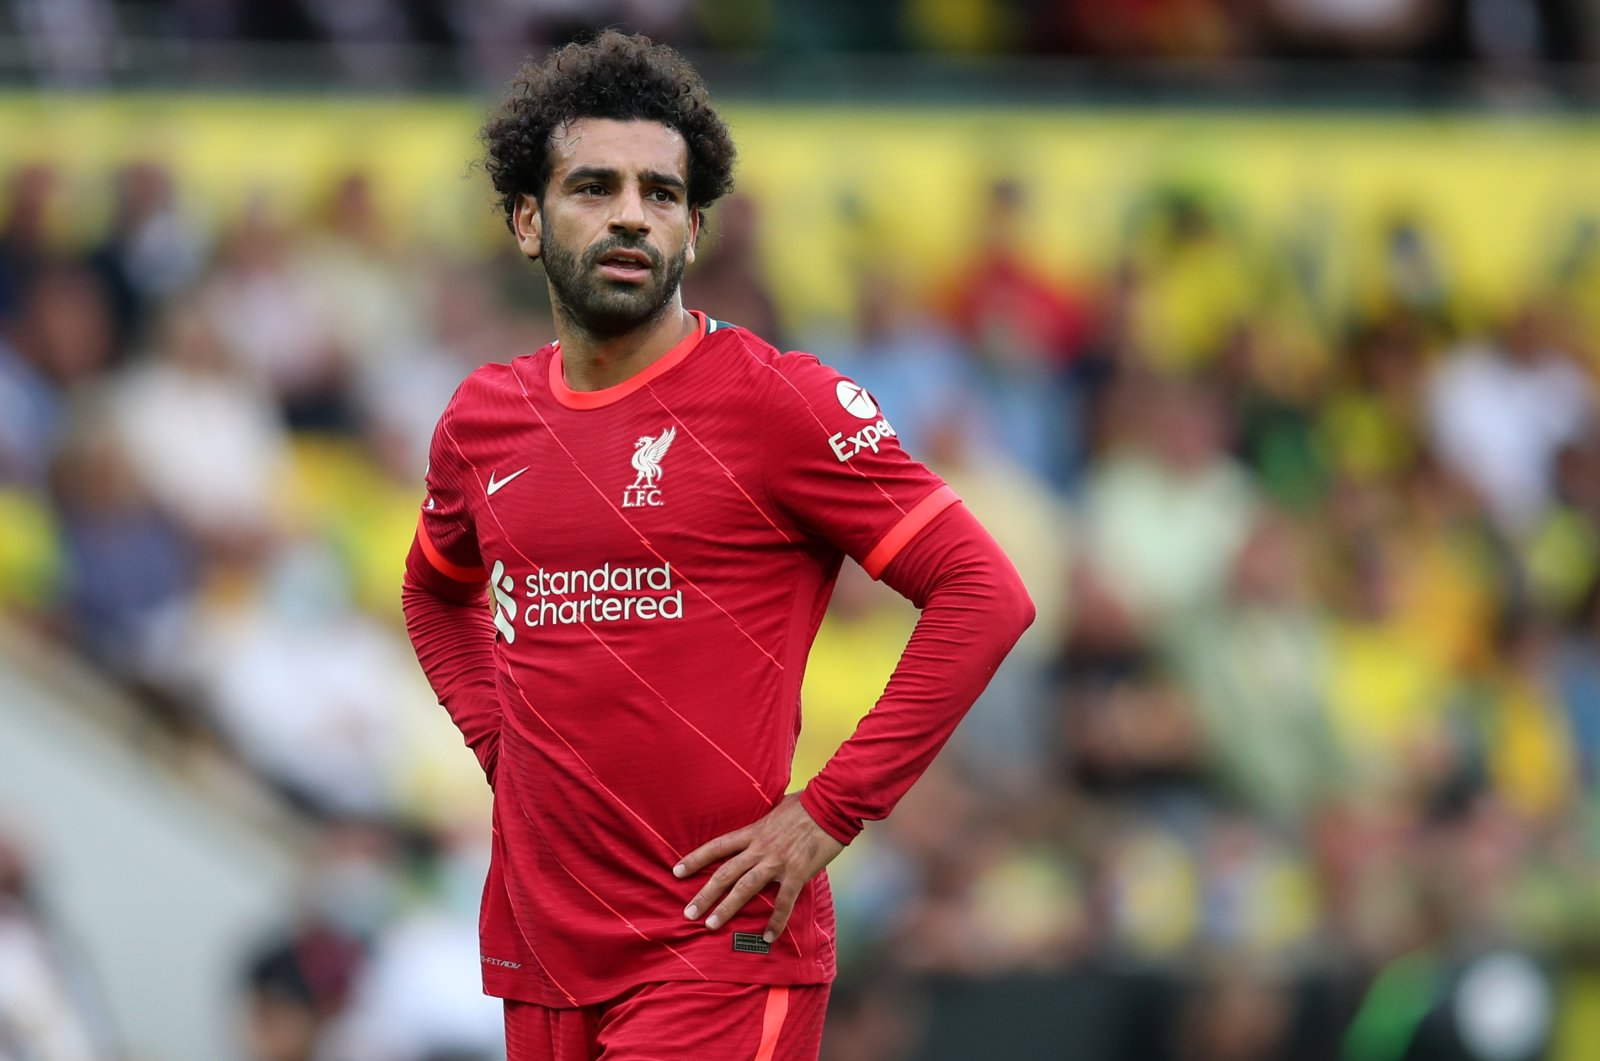 Liverpool's Mohamed Salah reacts during a Premier League match against Norwich City at Carrow Road, Norwich, England, Aug. 14, 2021. (Reuters Photo)